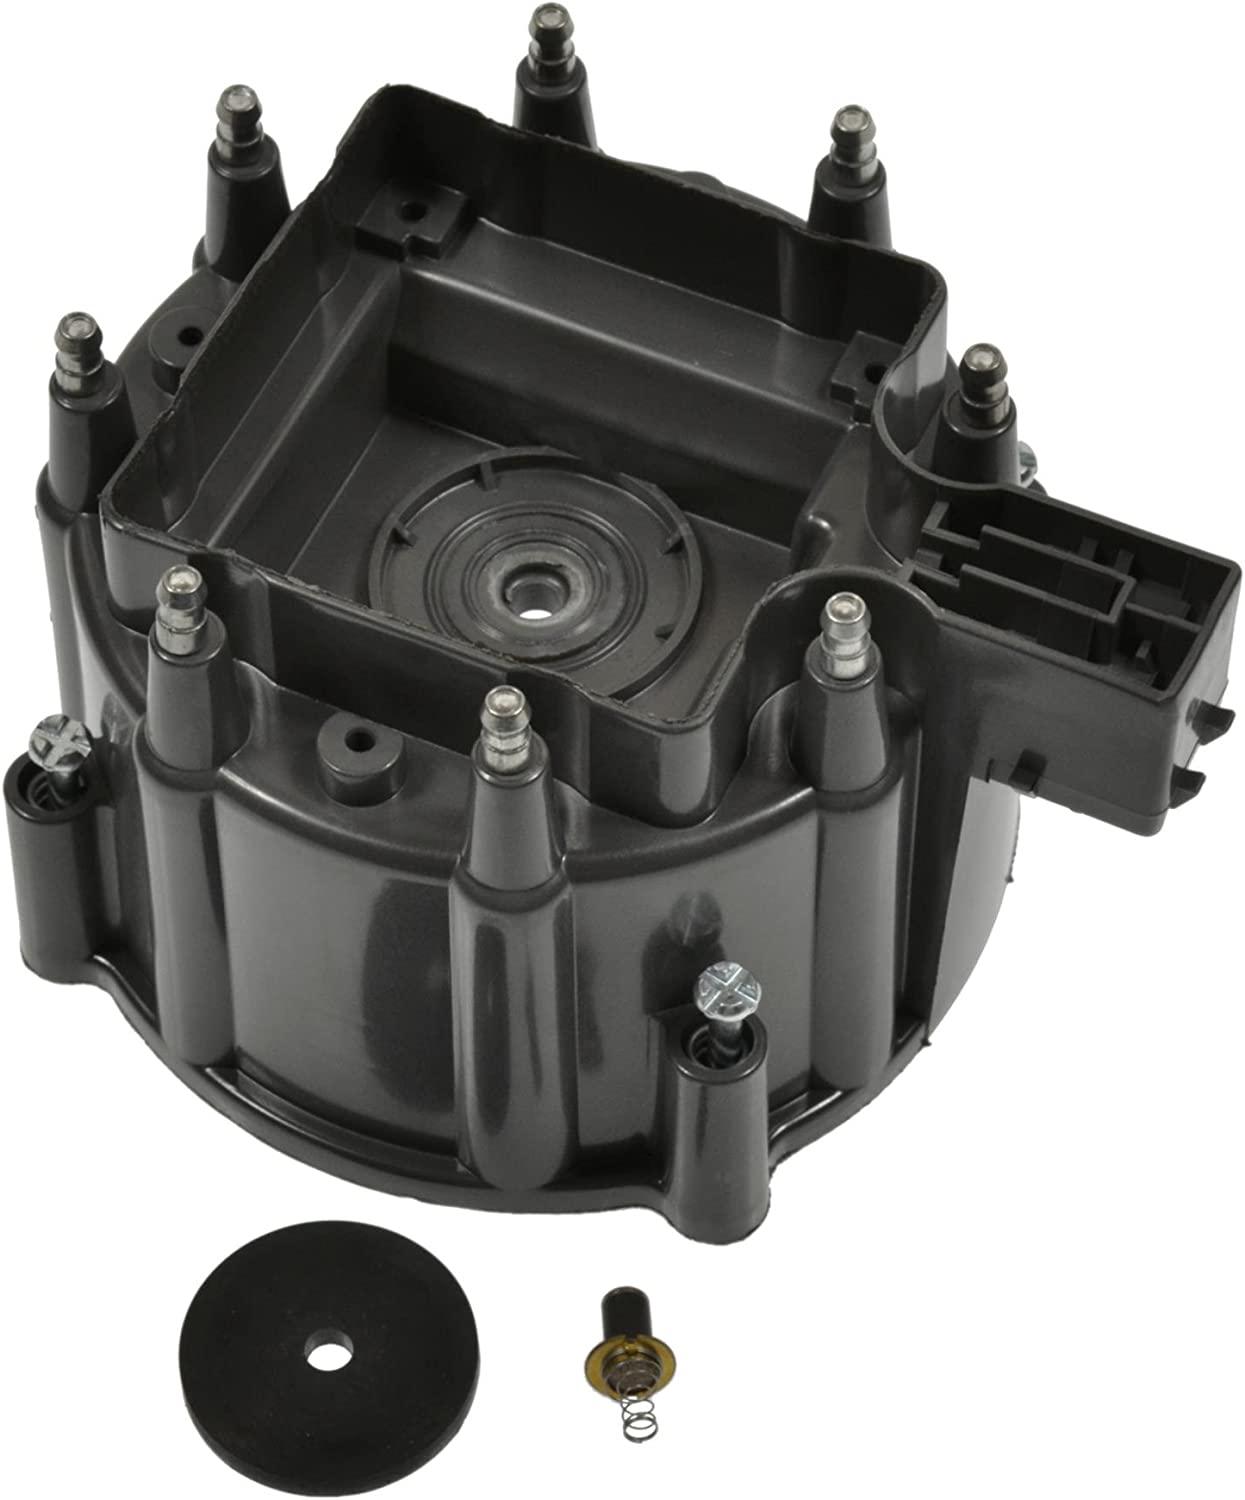 ACDelco D559A Professional Ignition Distributor Cap